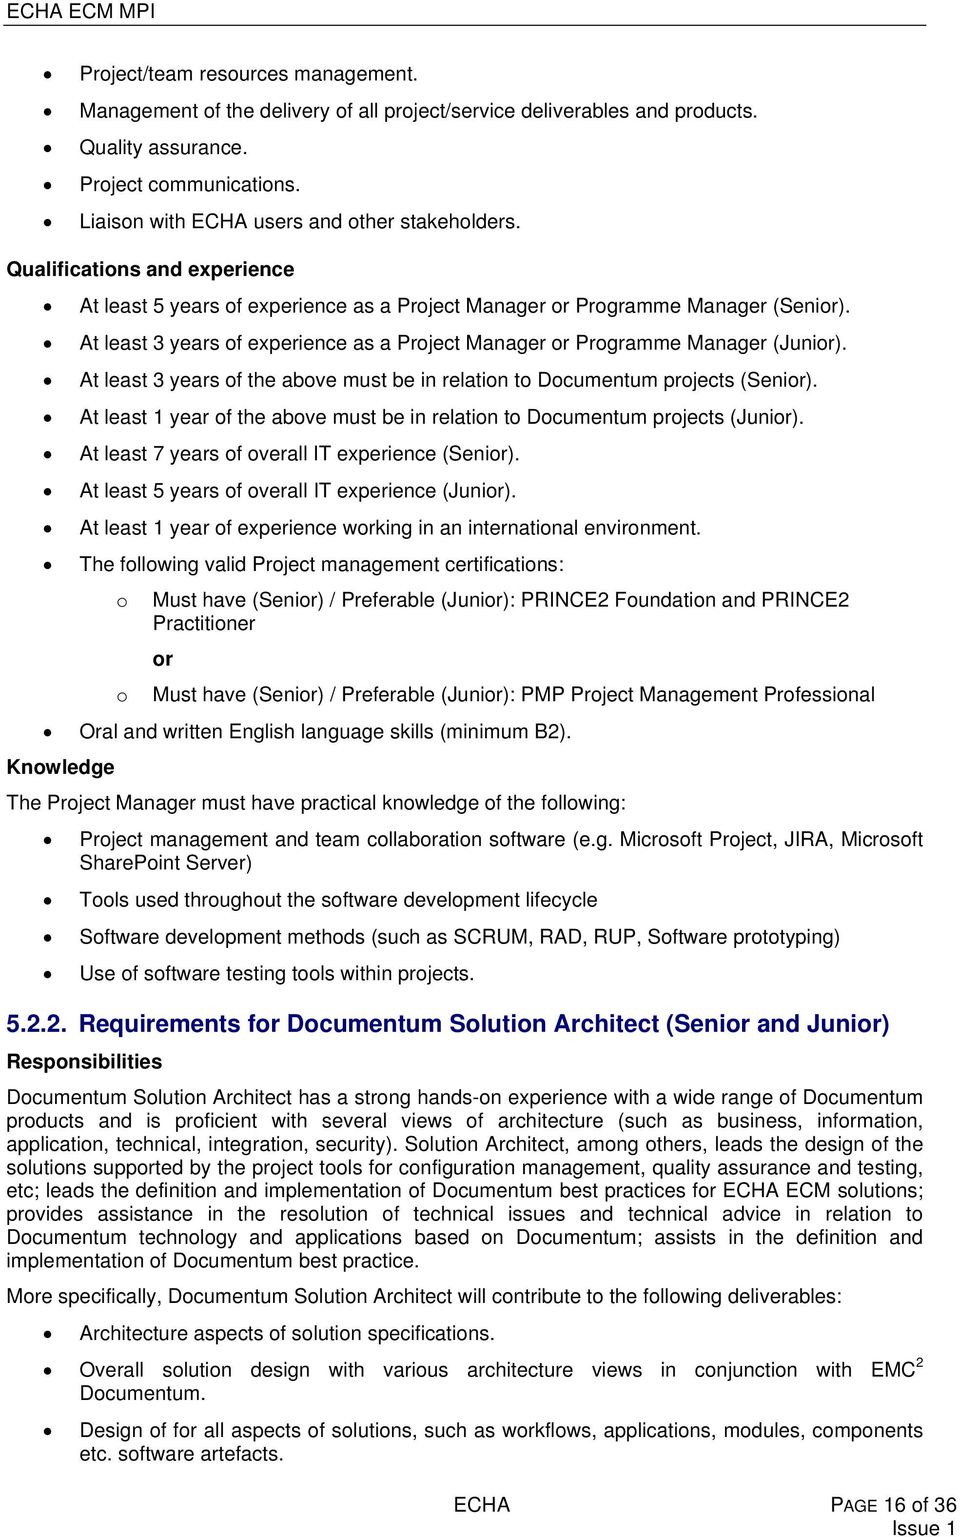 At least 3 years of experience as a Project Manager or Programme Manager (Junior). At least 3 years of the above must be in relation to Documentum projects (Senior).